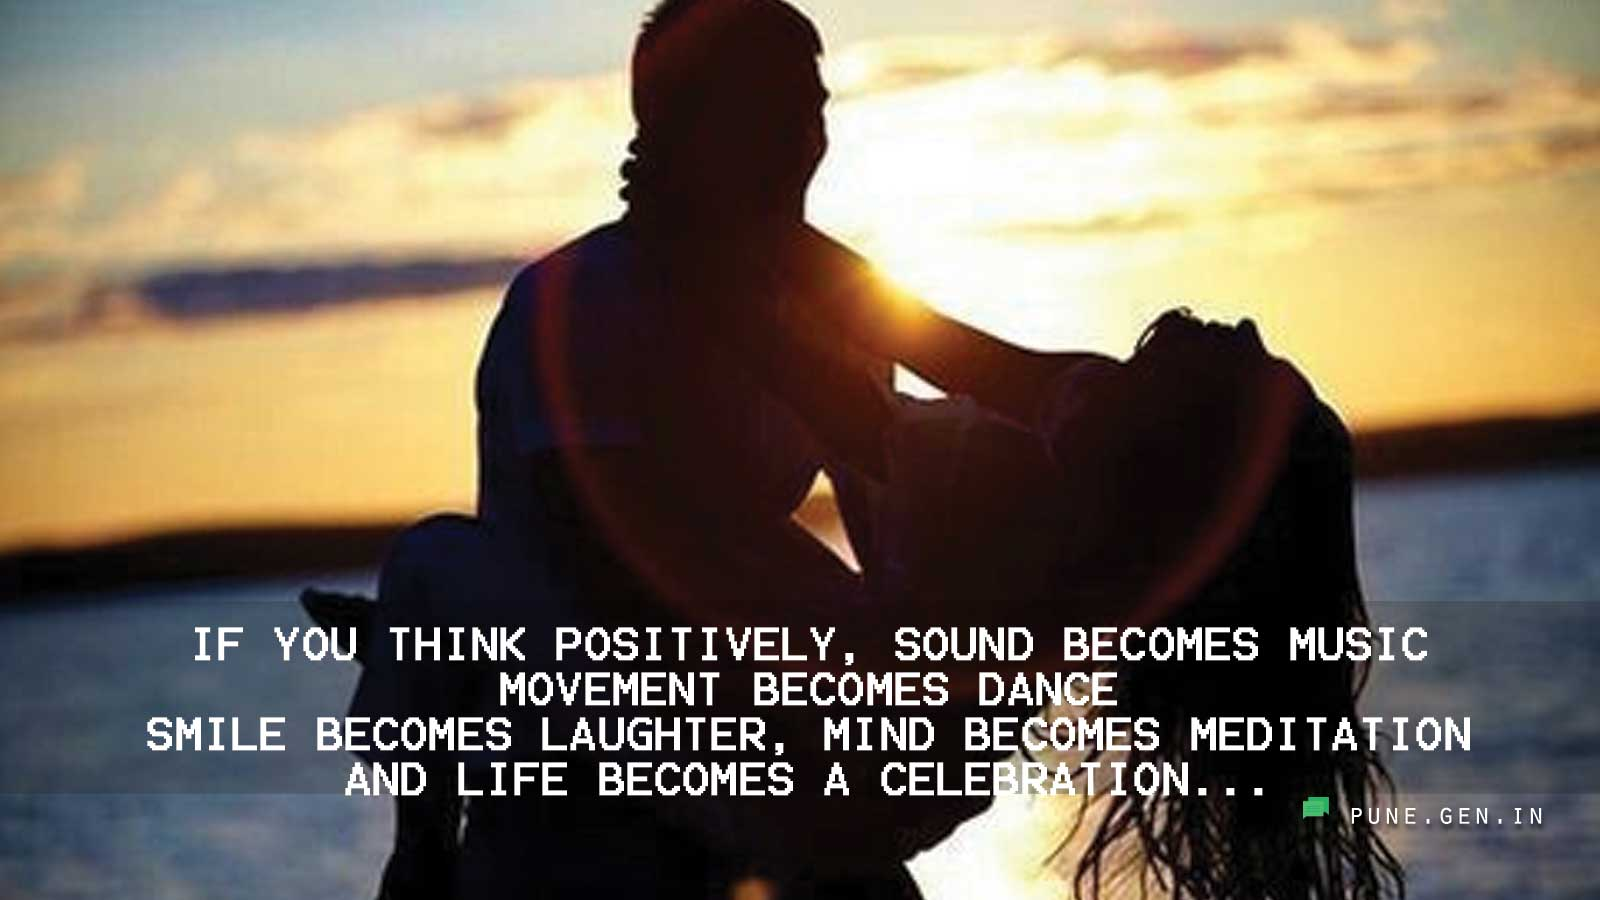 Positive Thinking : If you think positively…